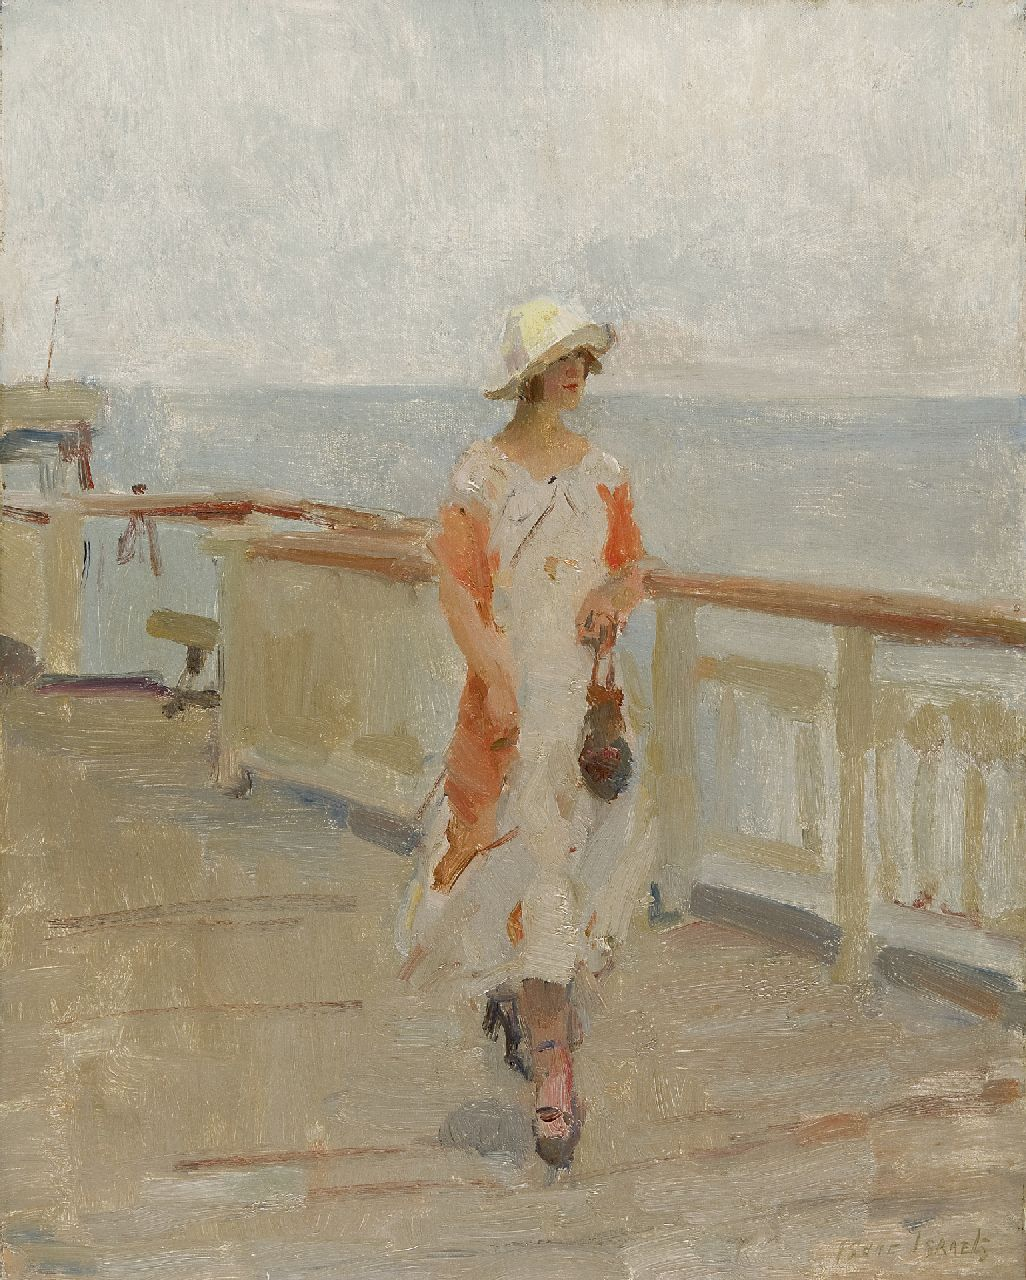 Israels I.L.  | 'Isaac' Lazarus Israels, Strolling on the 'Scheveningen pier', oil on canvas 50.2 x 40.0 cm, signed l.r.